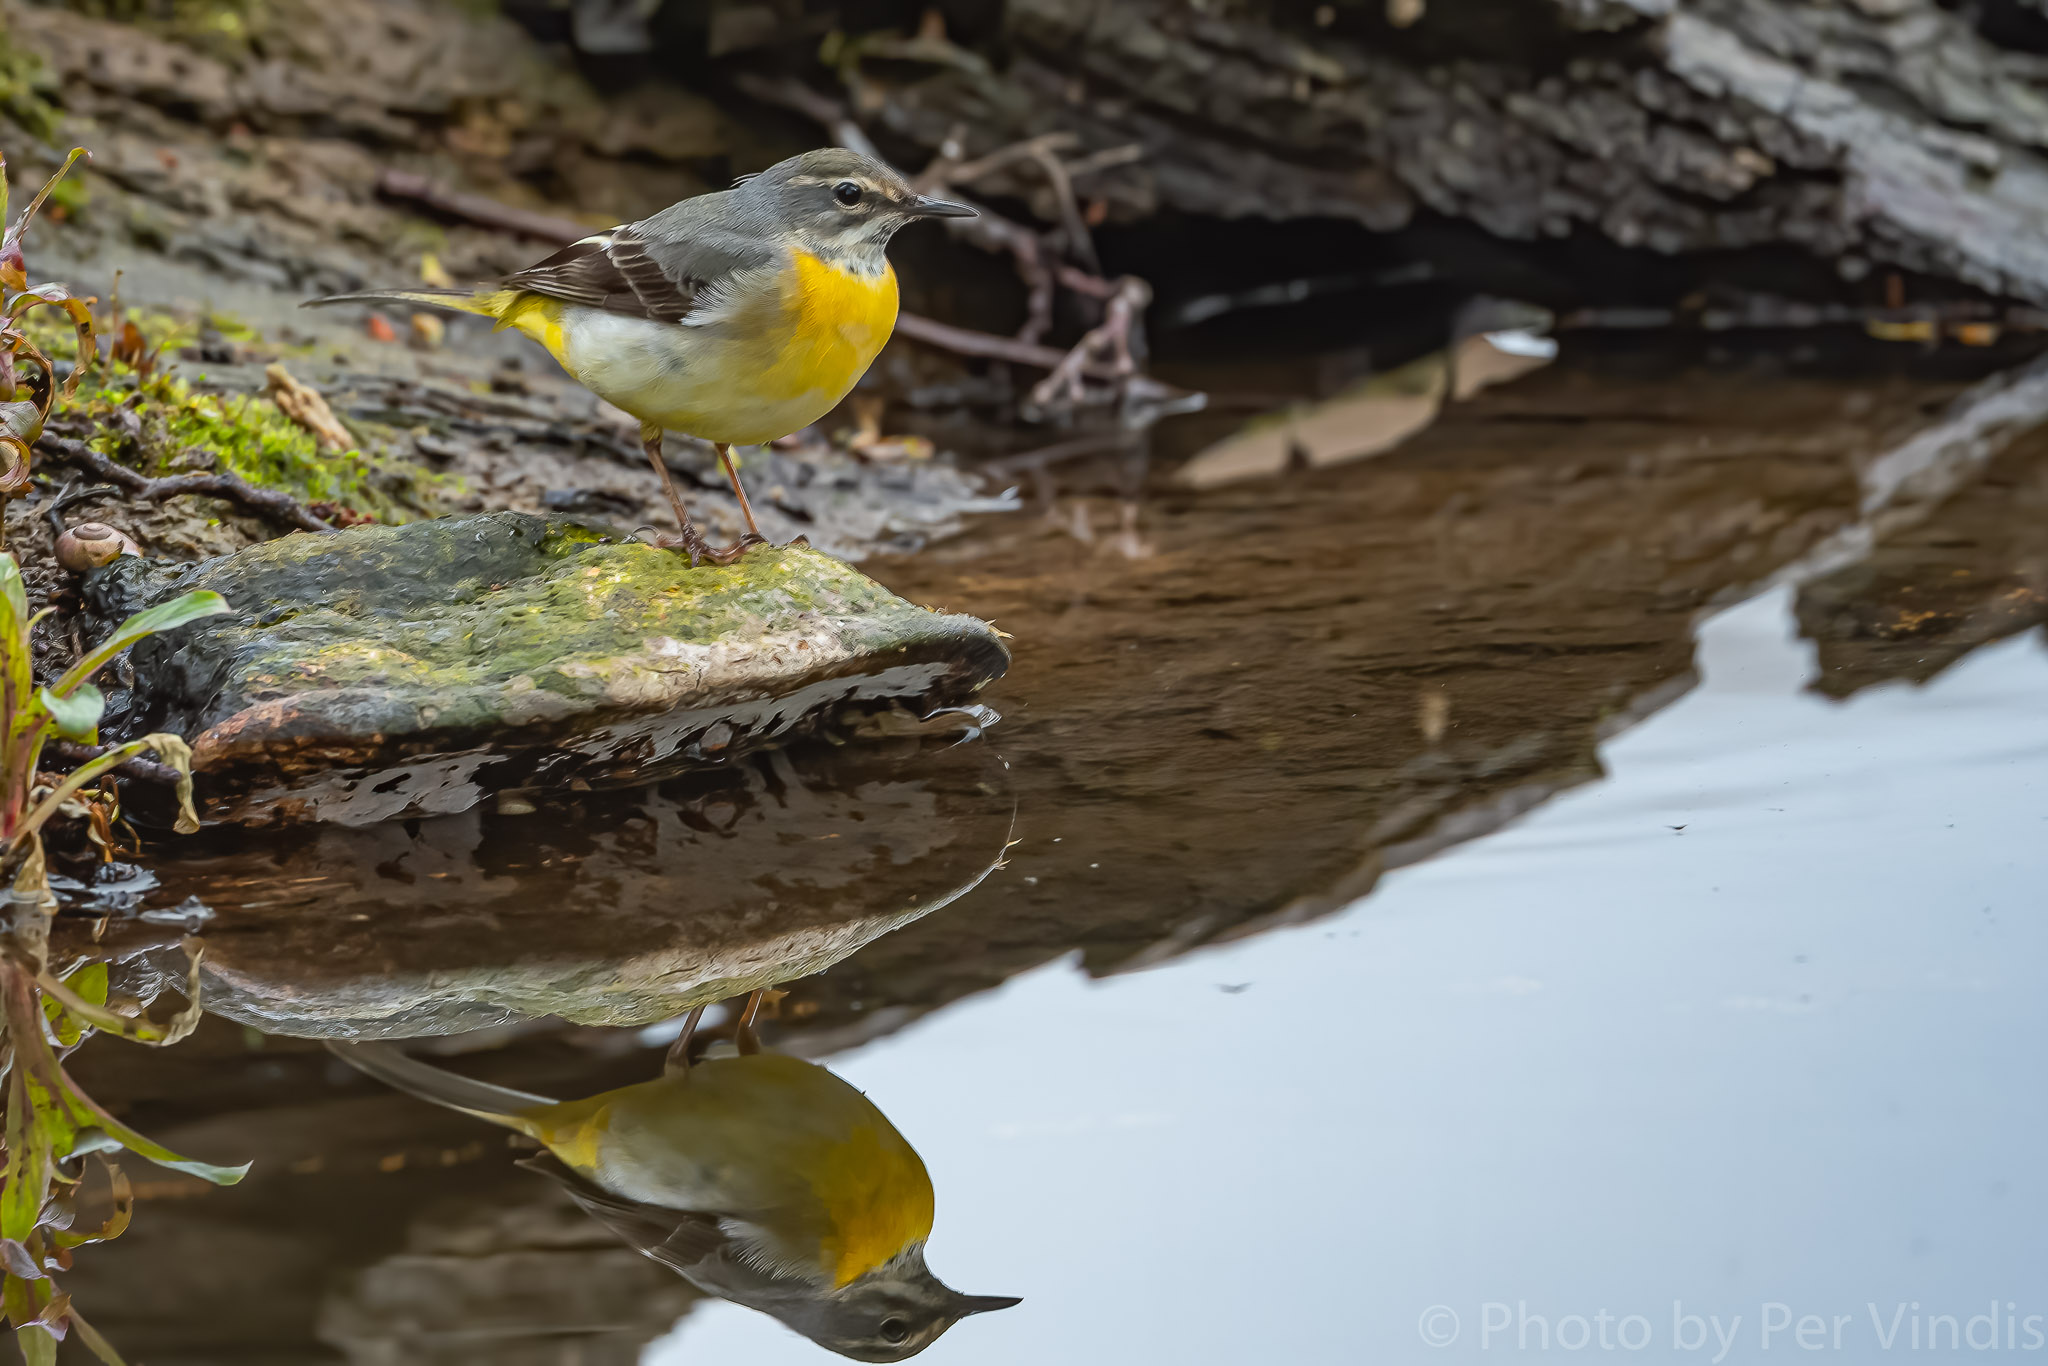 Author: Per Vindis